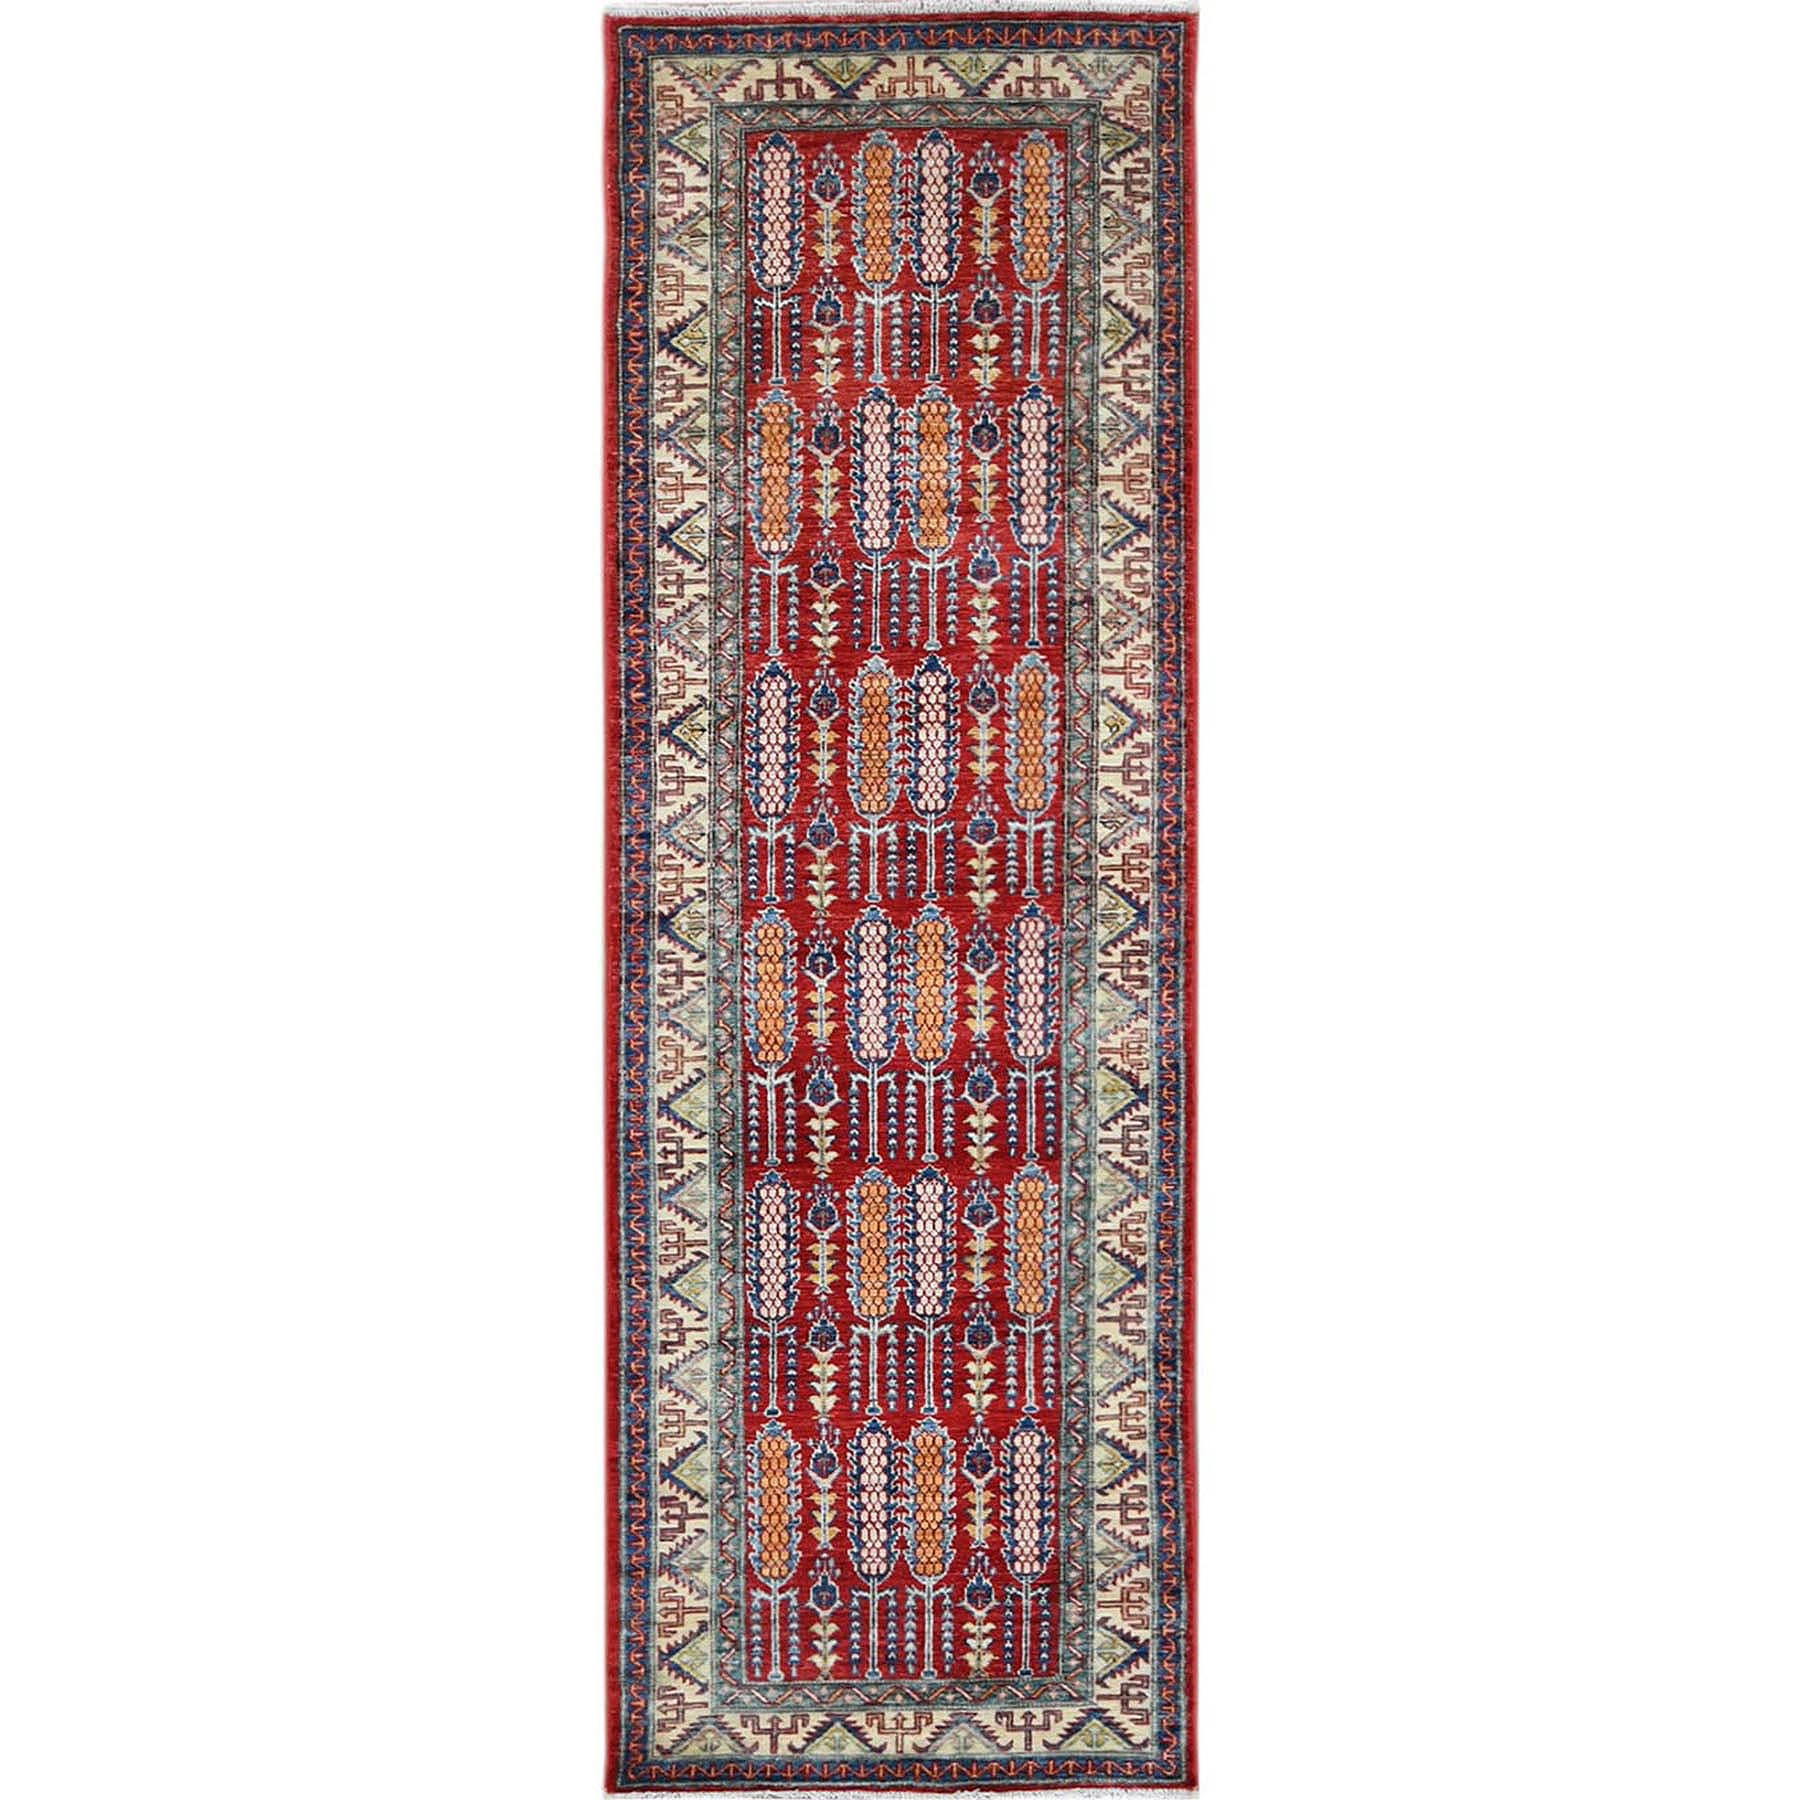 "2'7""x8' Red Afghan Super Kazak with Cypress Tree Design 100% Wool Hand Woven Runner Oriental Rug"